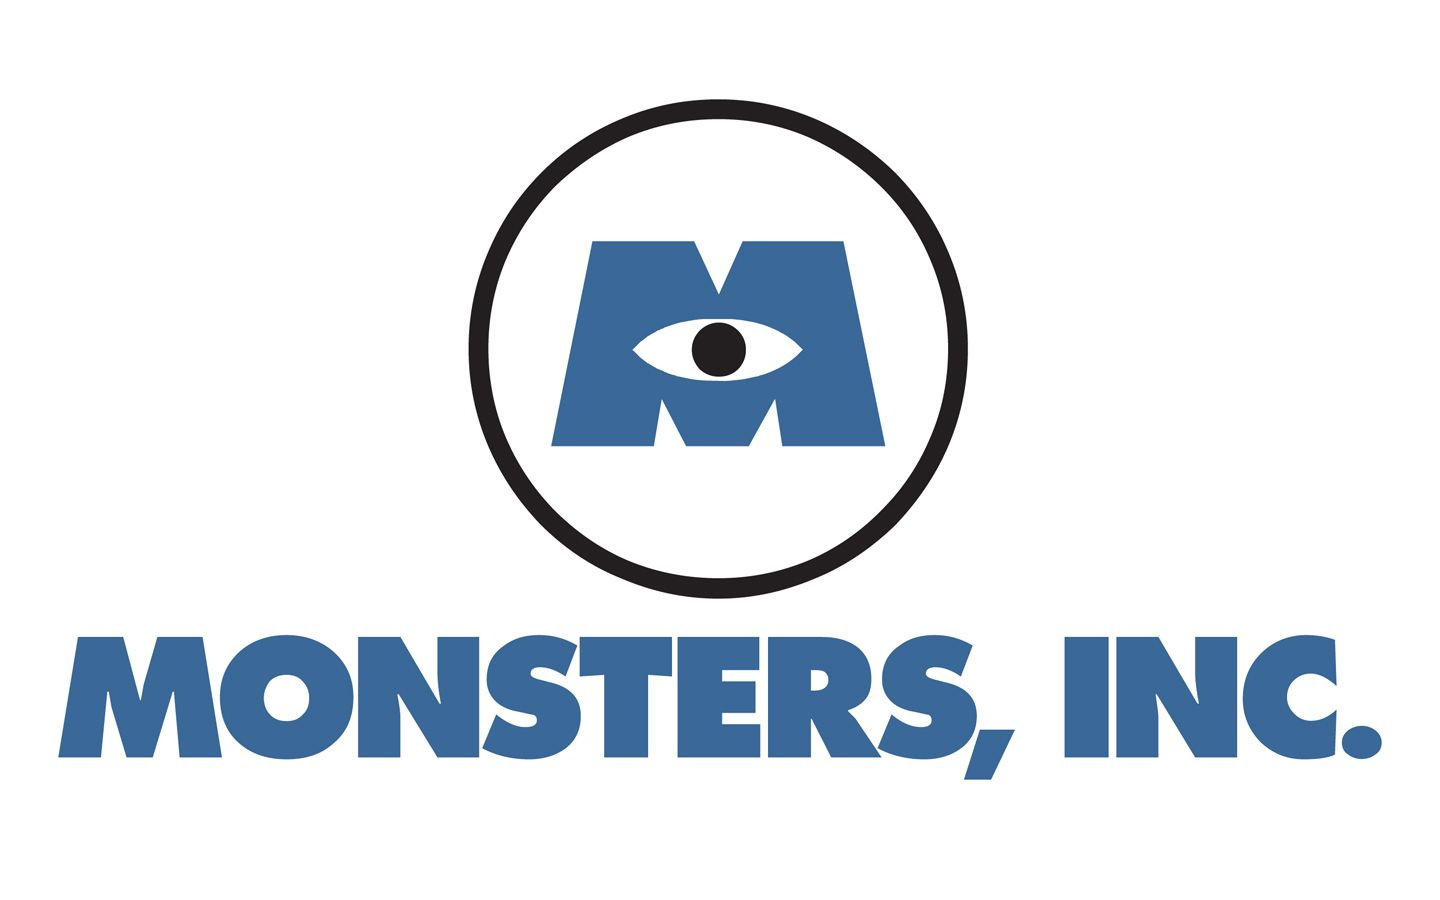 Monsters Inc Logo Free Monsters Inc Logo Png Transparent Images 39373 Pngio